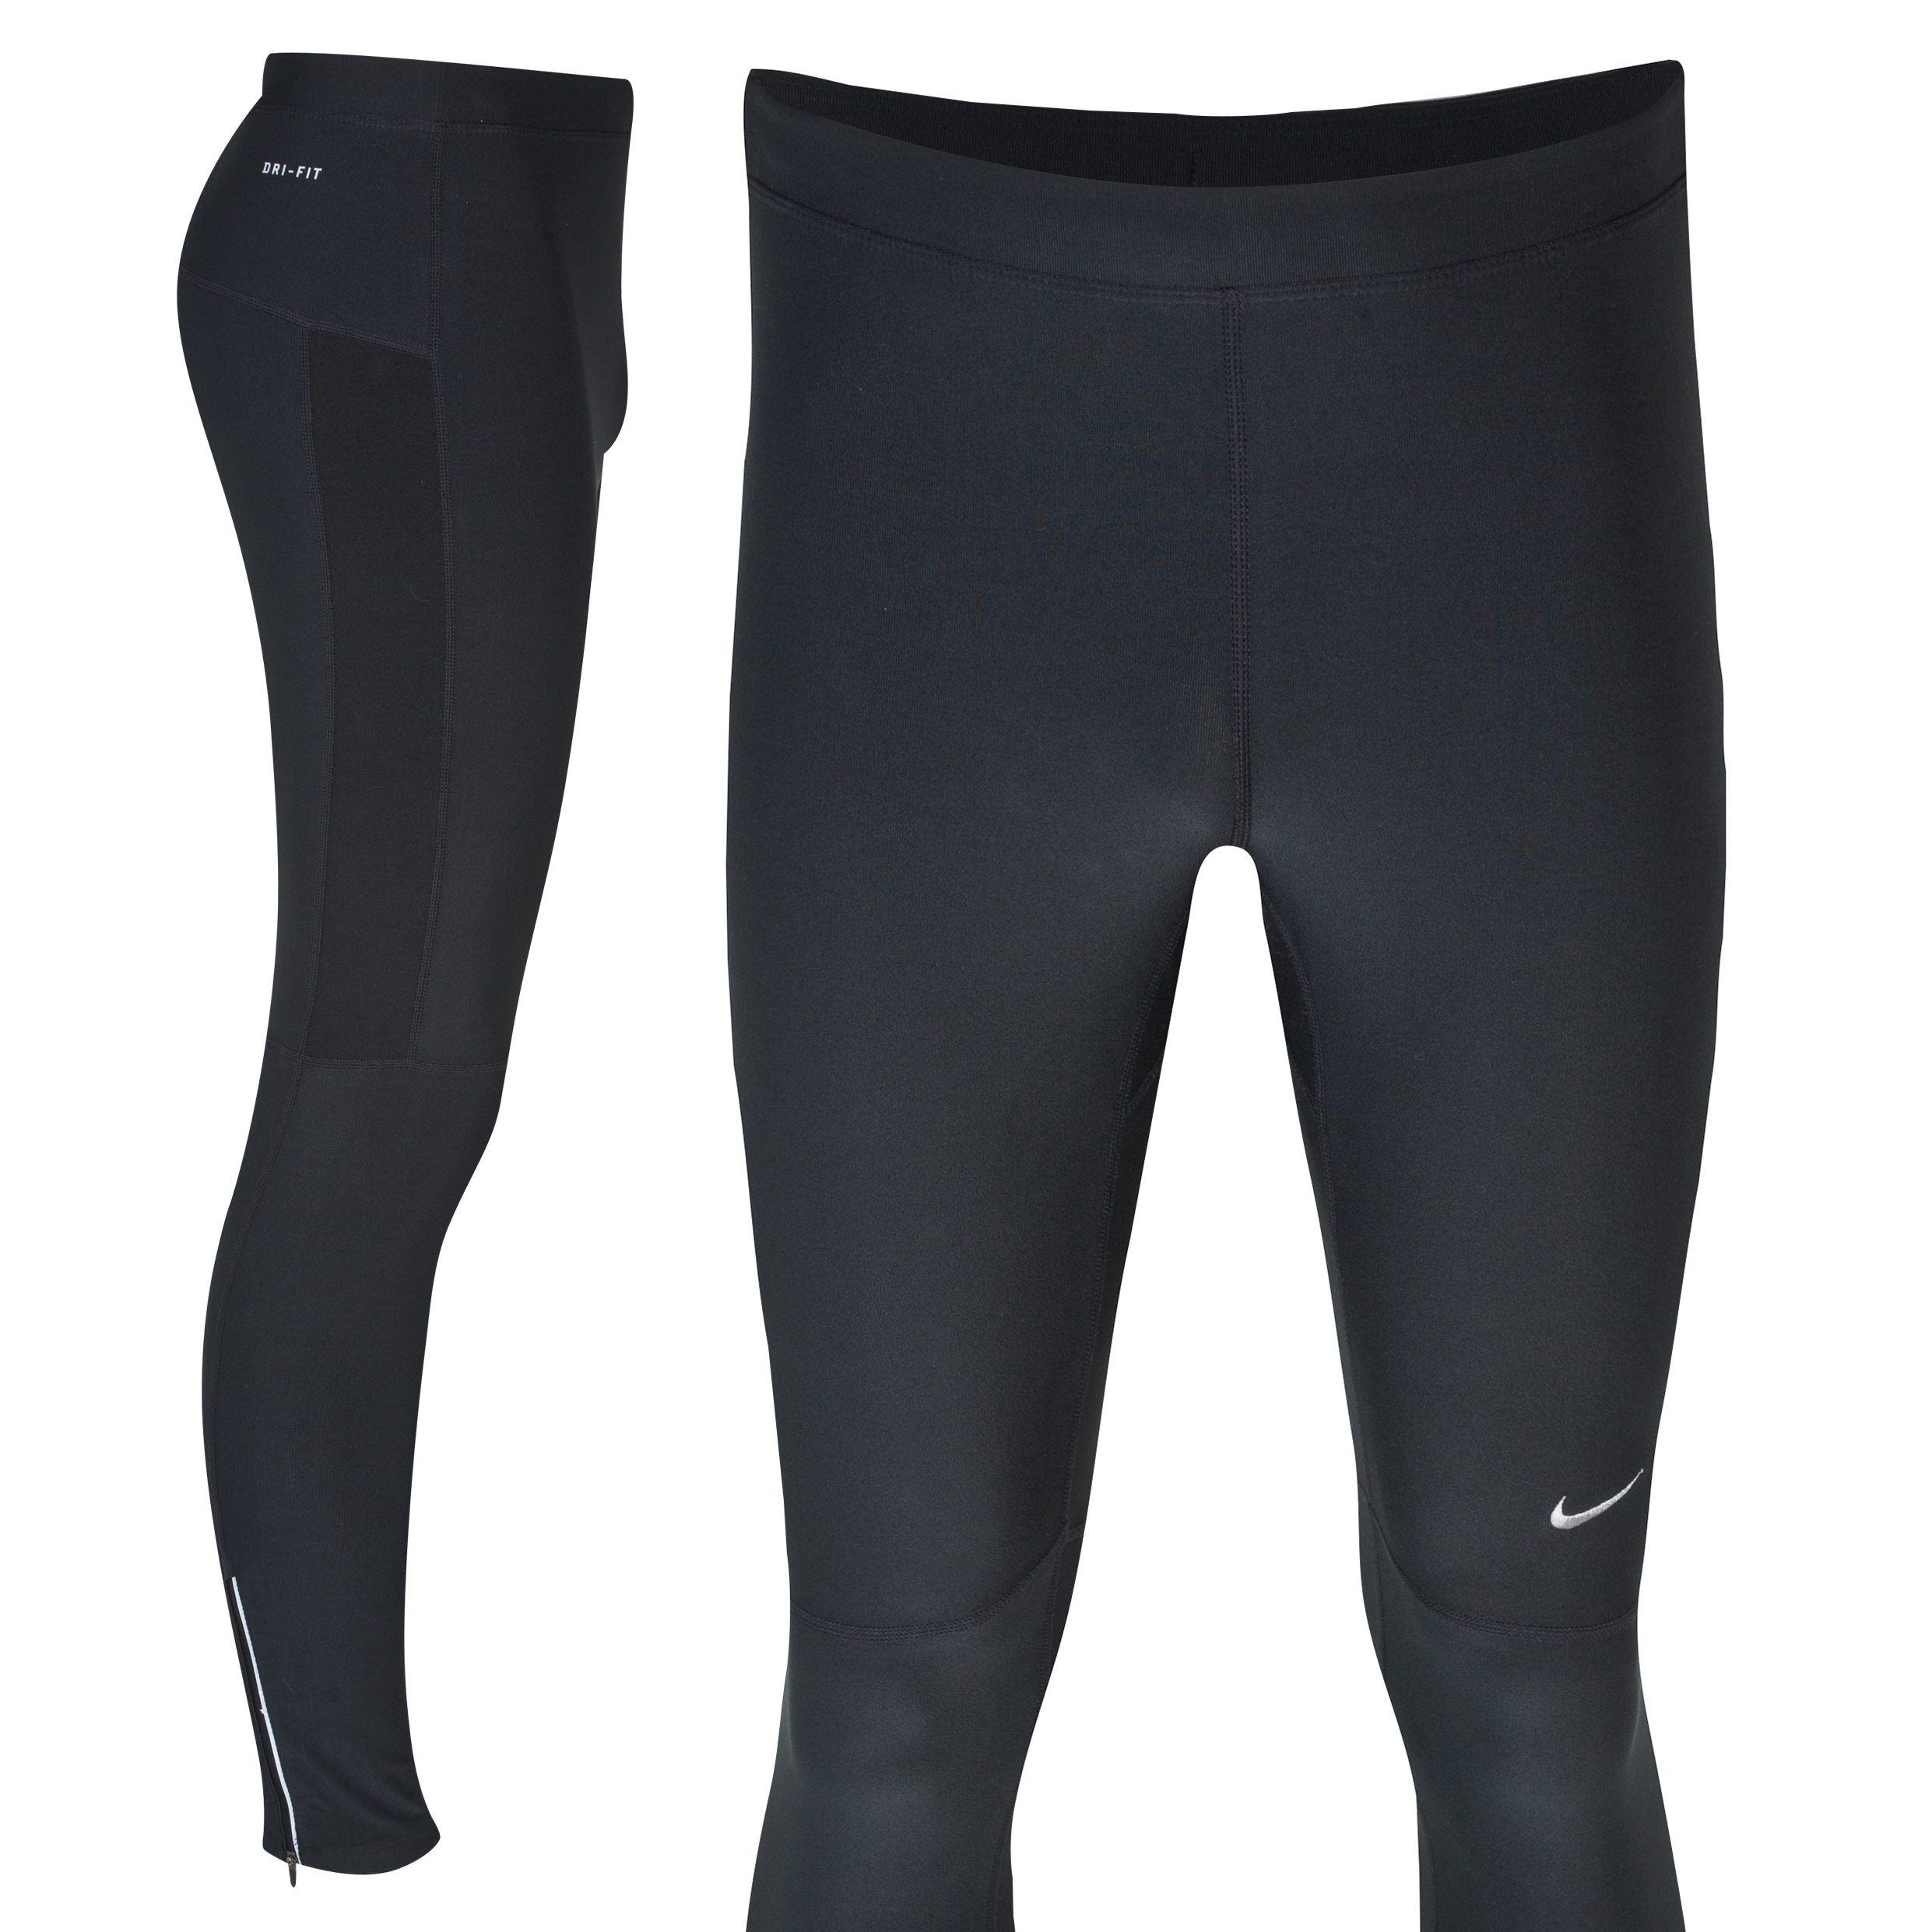 Nike Filament Tight - Black/Black